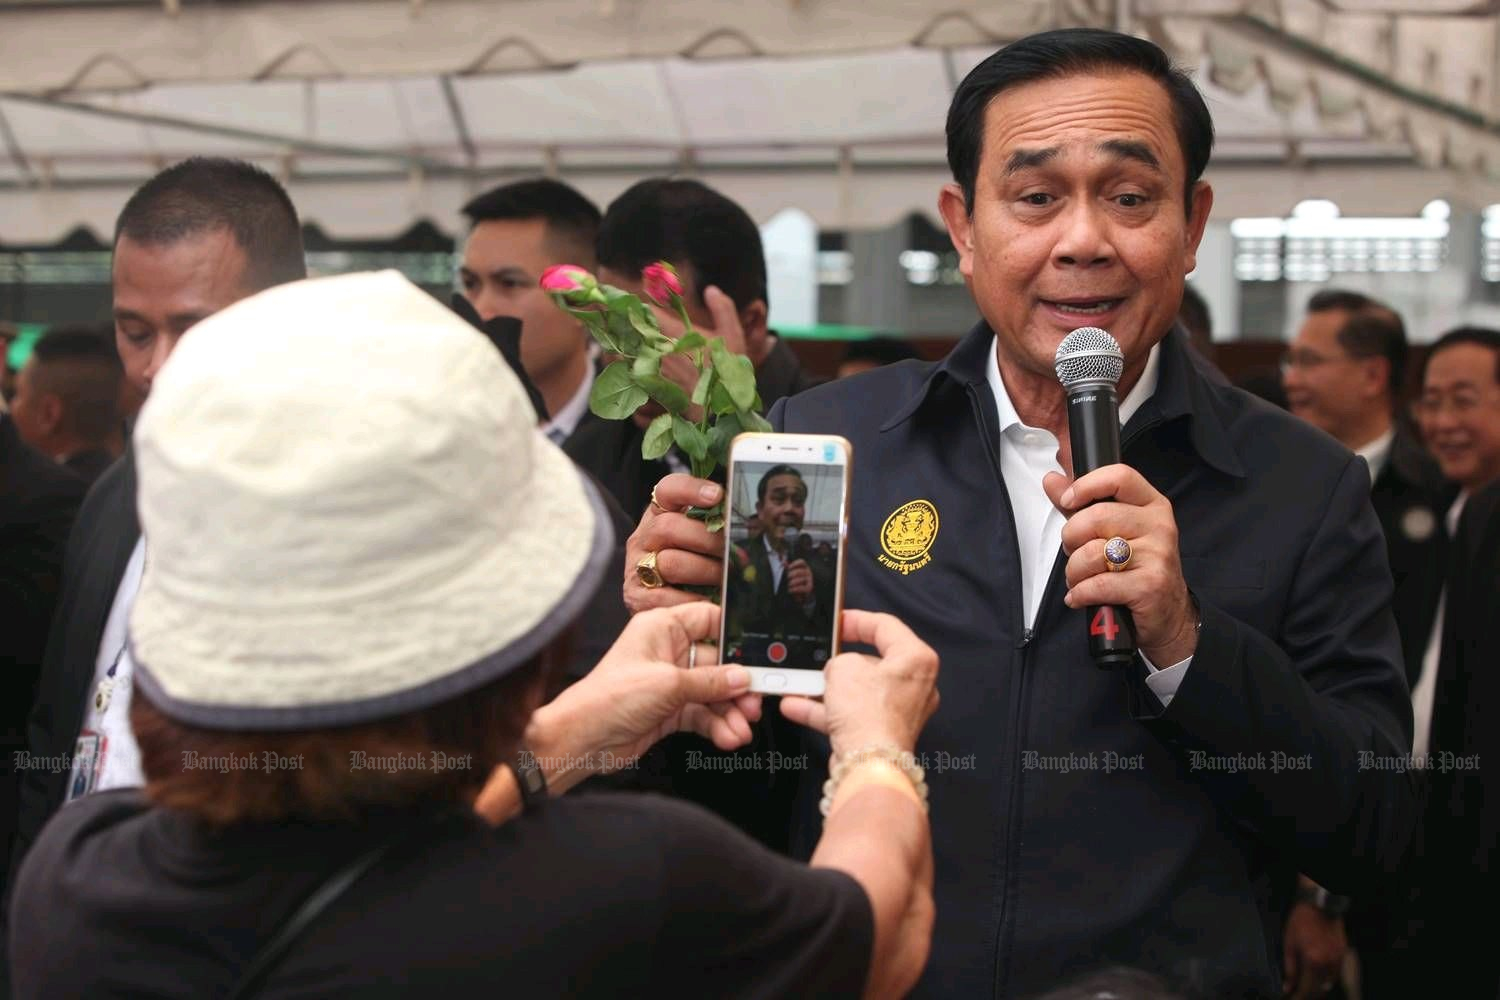 Prime Minister Prayut Chan-o-cha speaks and poses for a fan photo at the same time. He is expected to make his election campaign debut at Korat on Sunday. (Post Today photo)